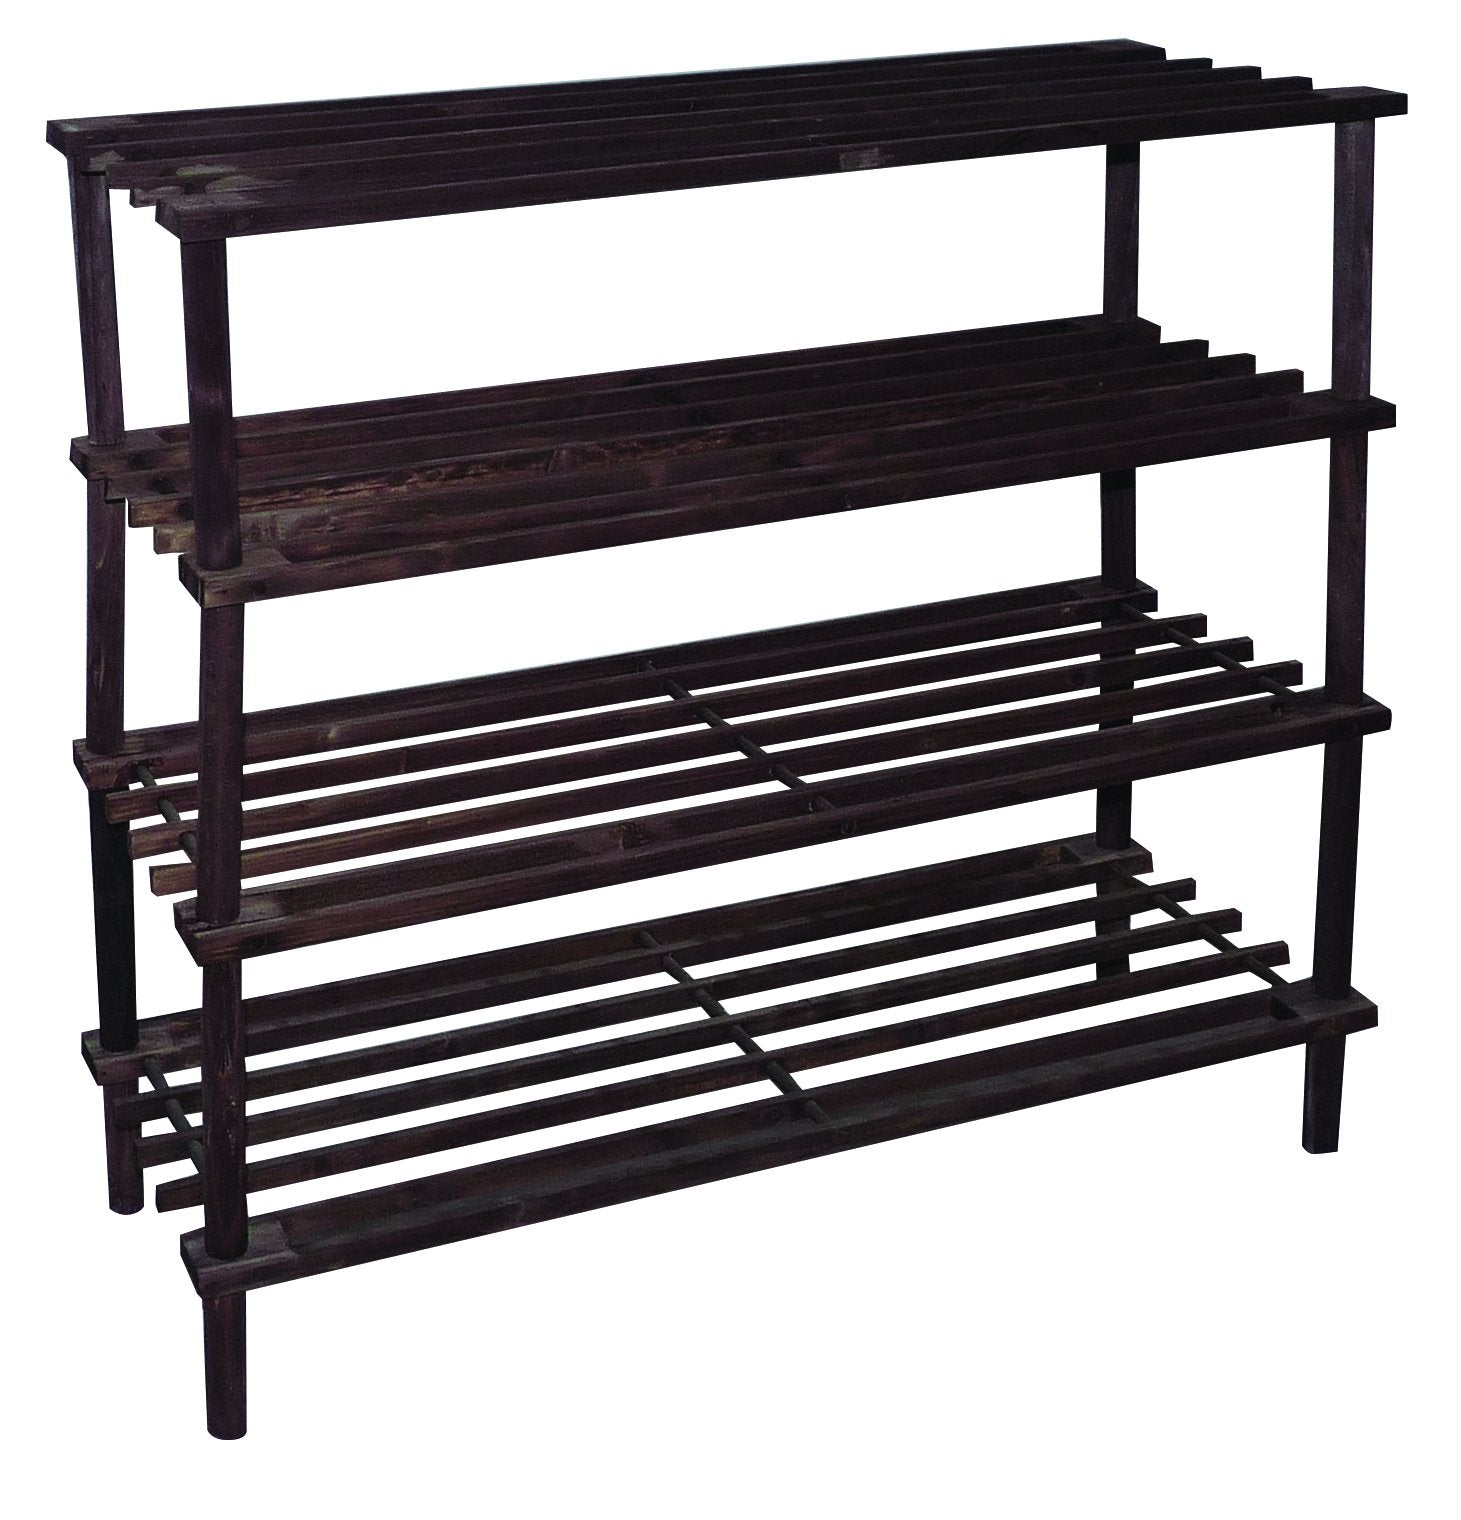 4 Tier Wooden Shoe Rack | (Dark Brown)